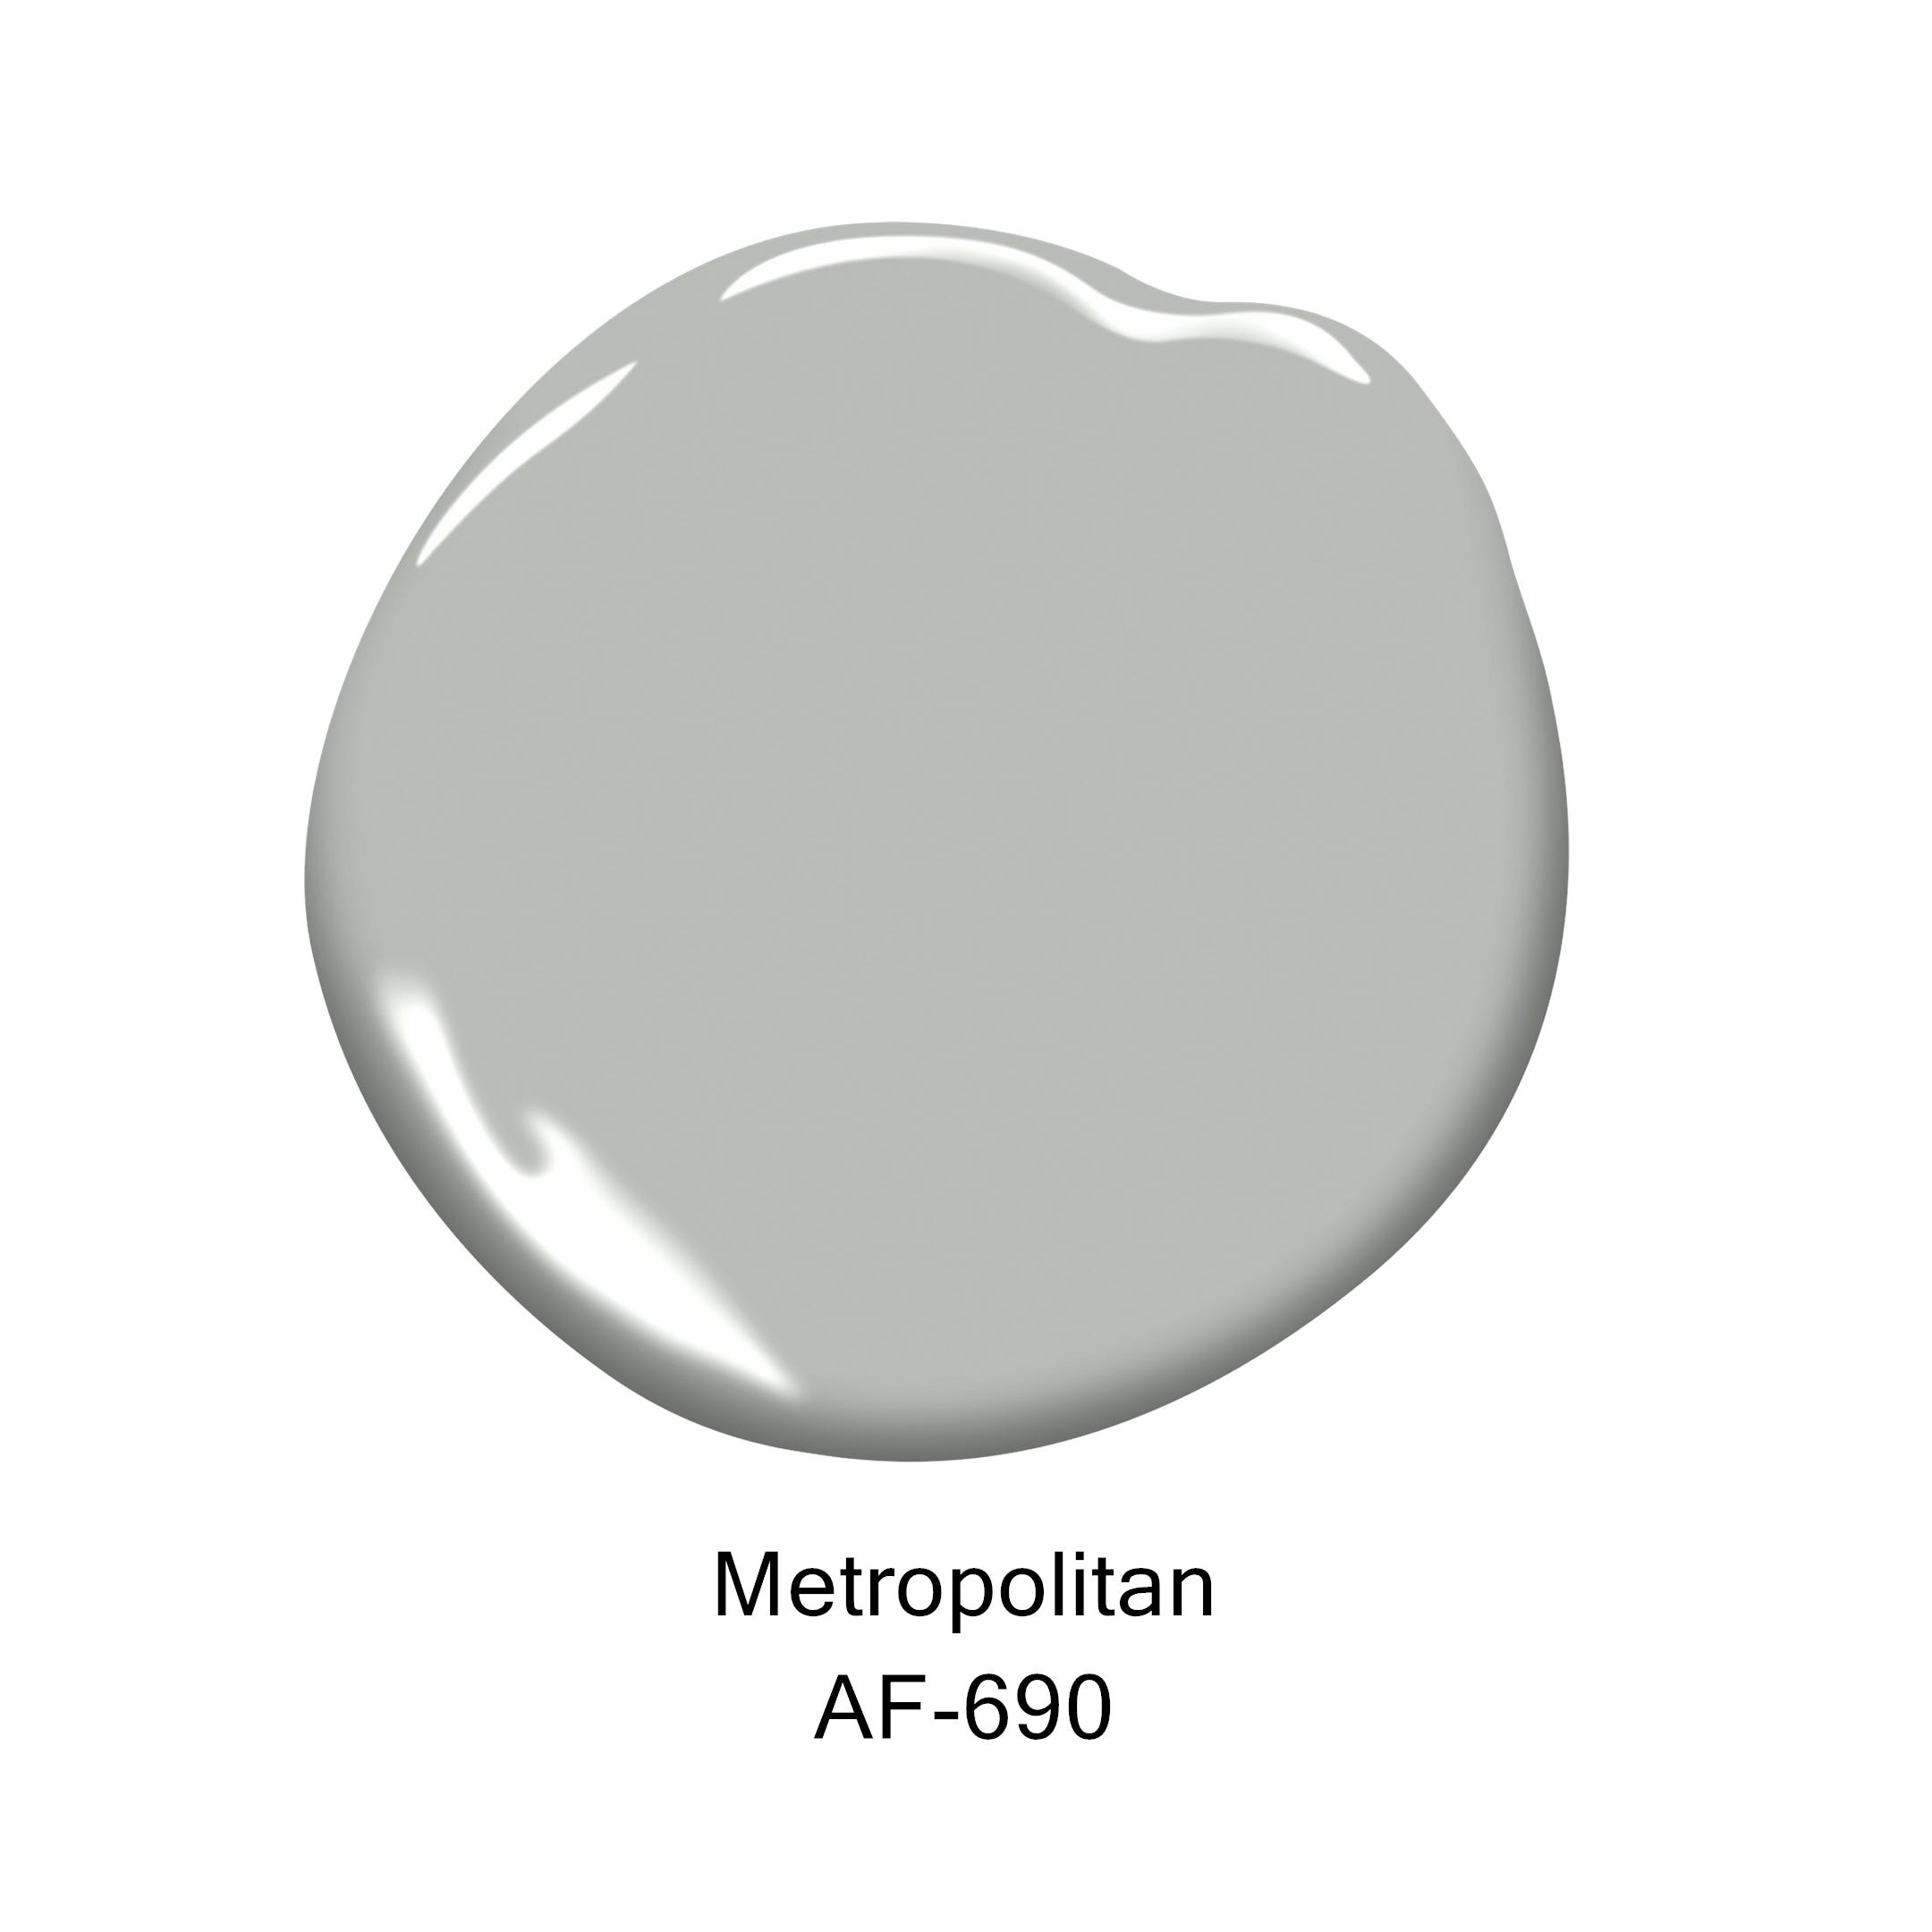 2019 Color of the Year selected by Montvale-based Benjamin Moore paint company